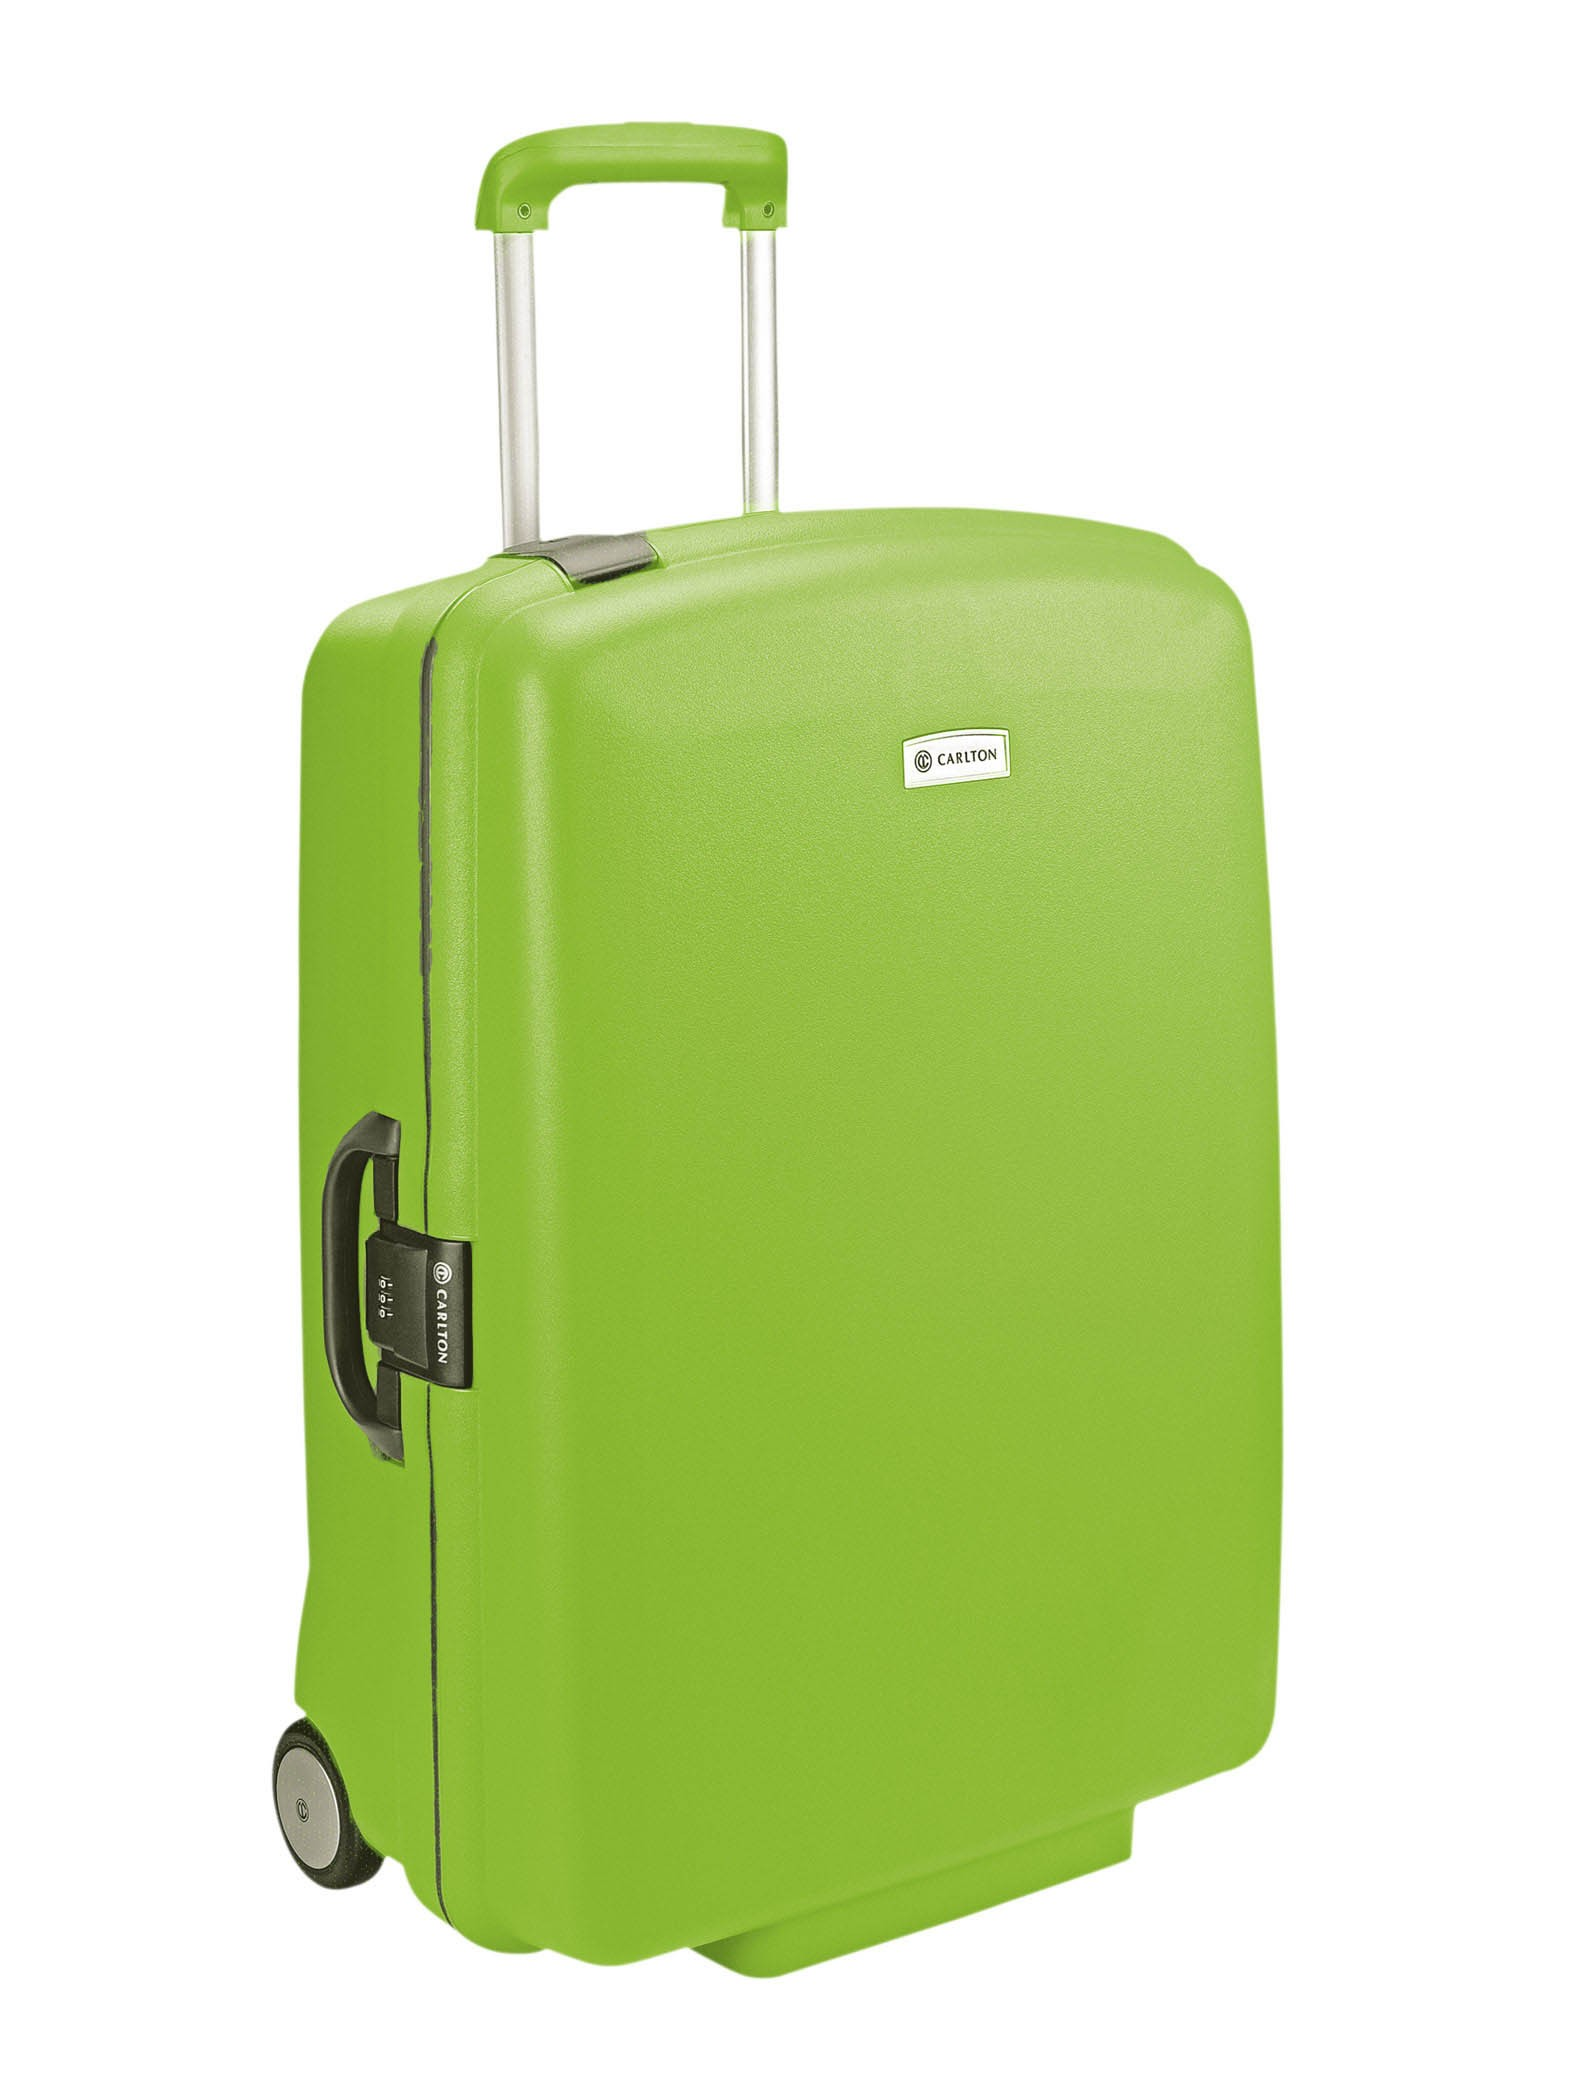 Carlton Glider II 2 Wheel Trolley Case 70cm in Lime